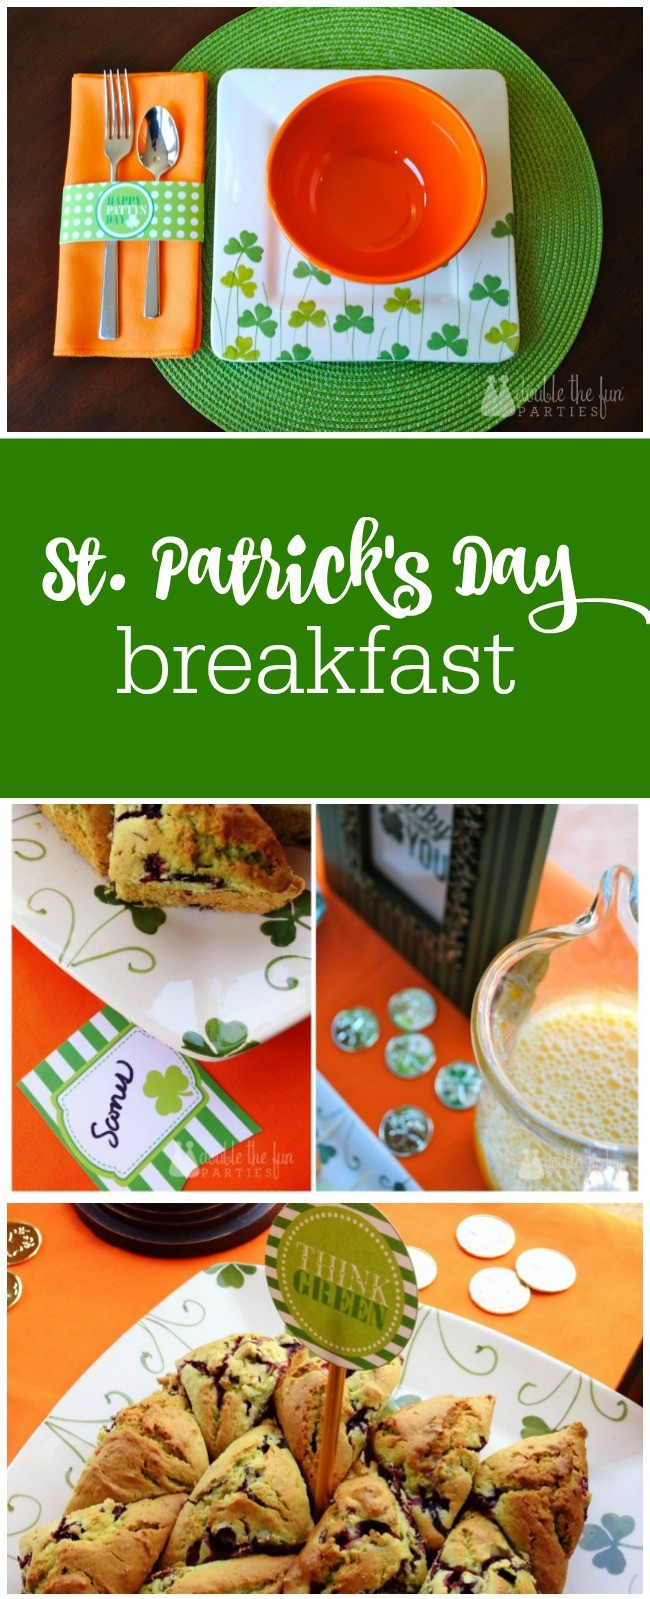 St. Patrick's Day breakfast by The Party Teacher